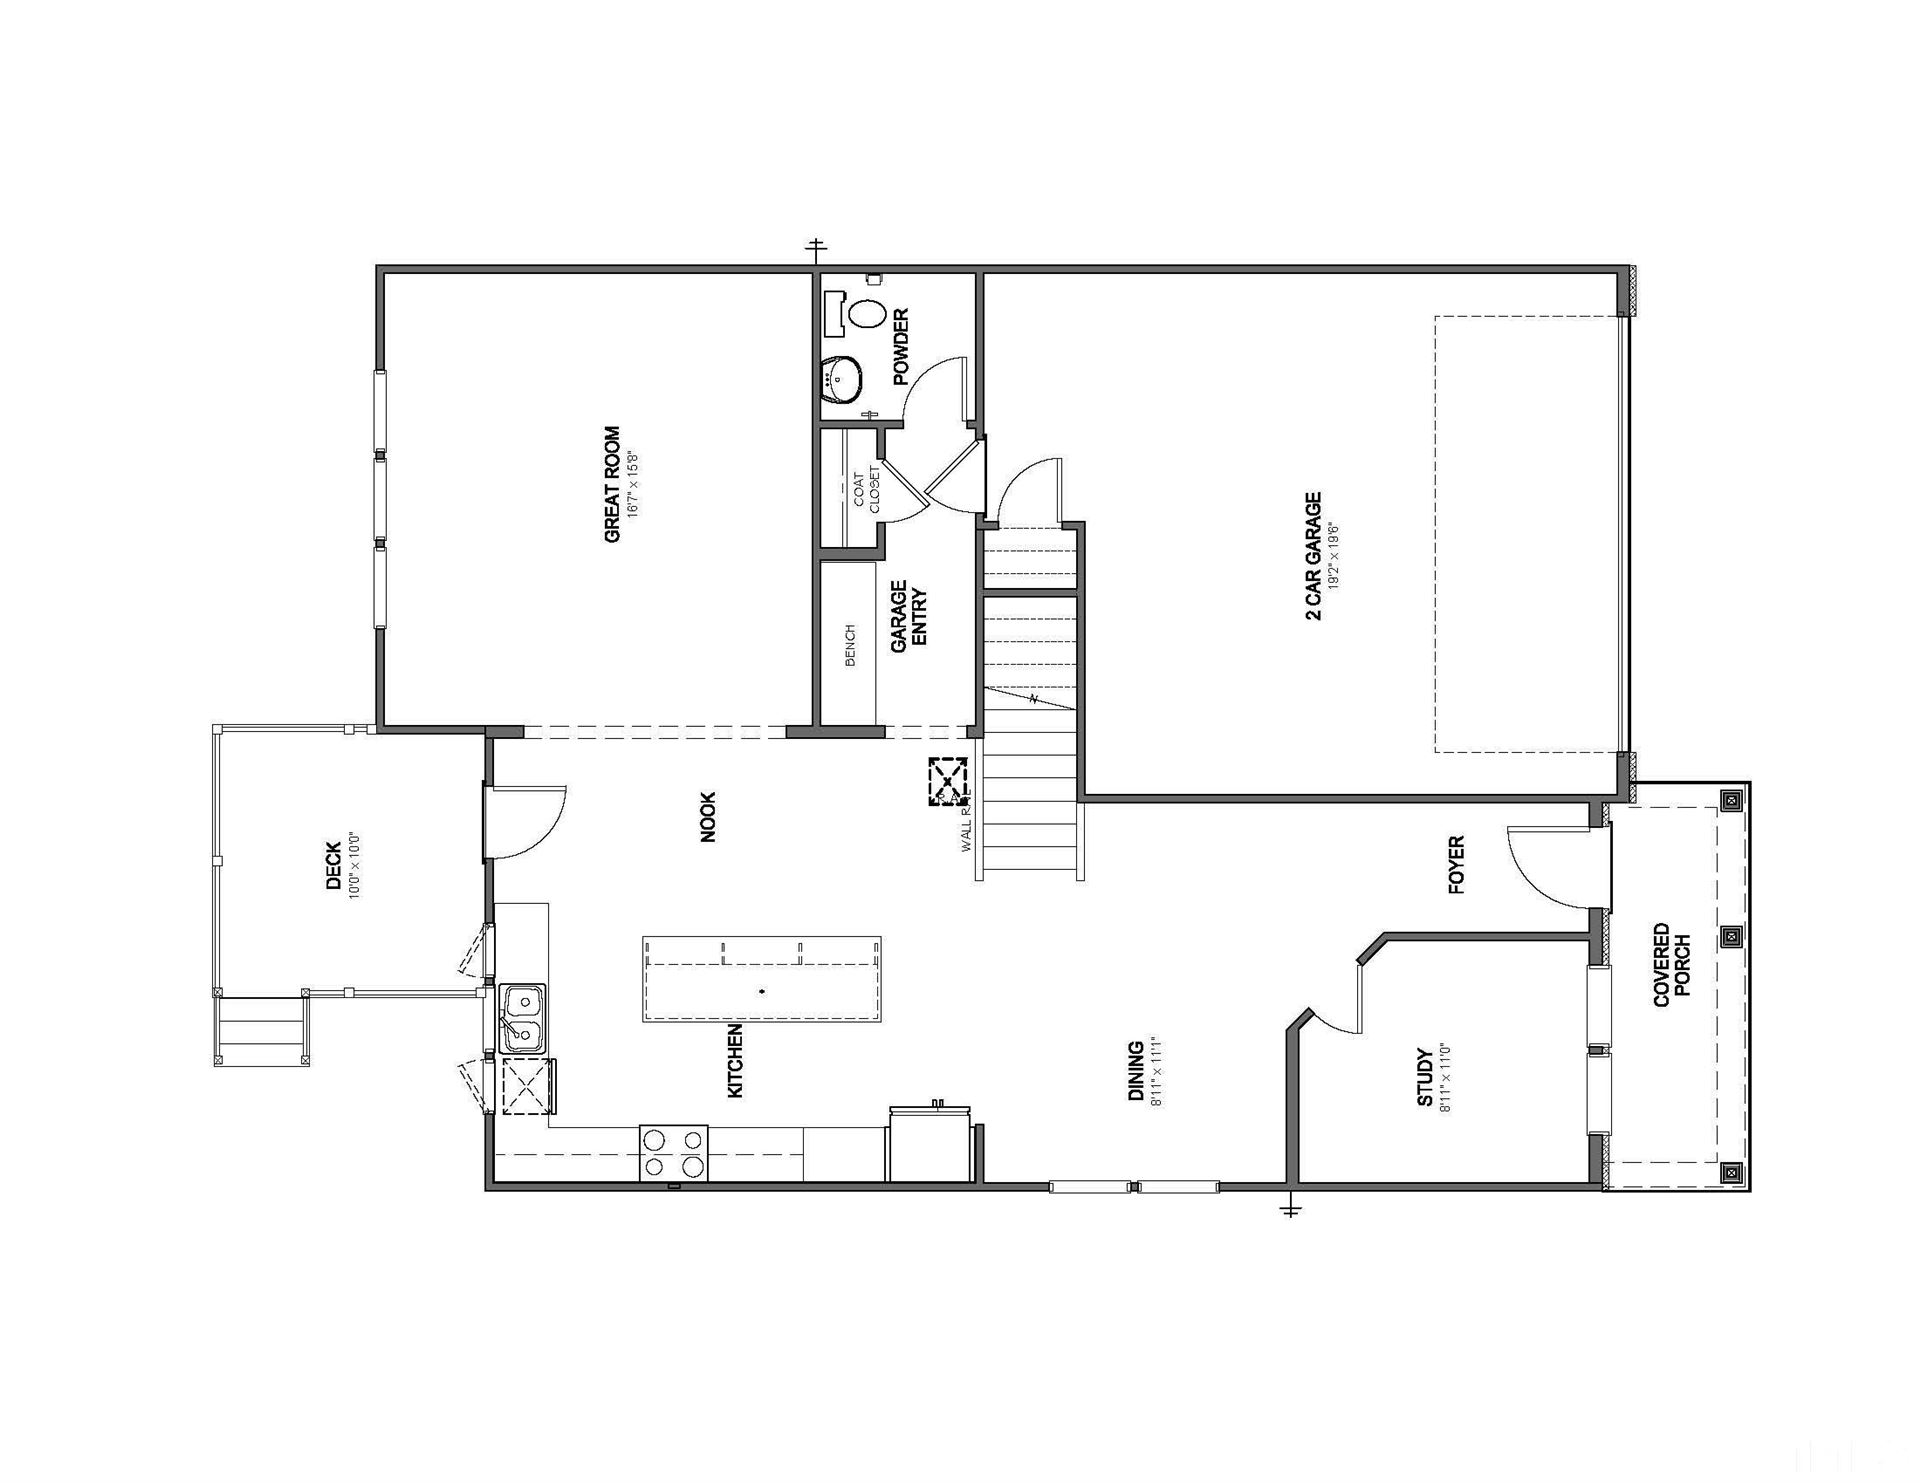 Photo of 17 W Dentaires #6, Willow Spring(s), NC 27592 (MLS # 2415803)